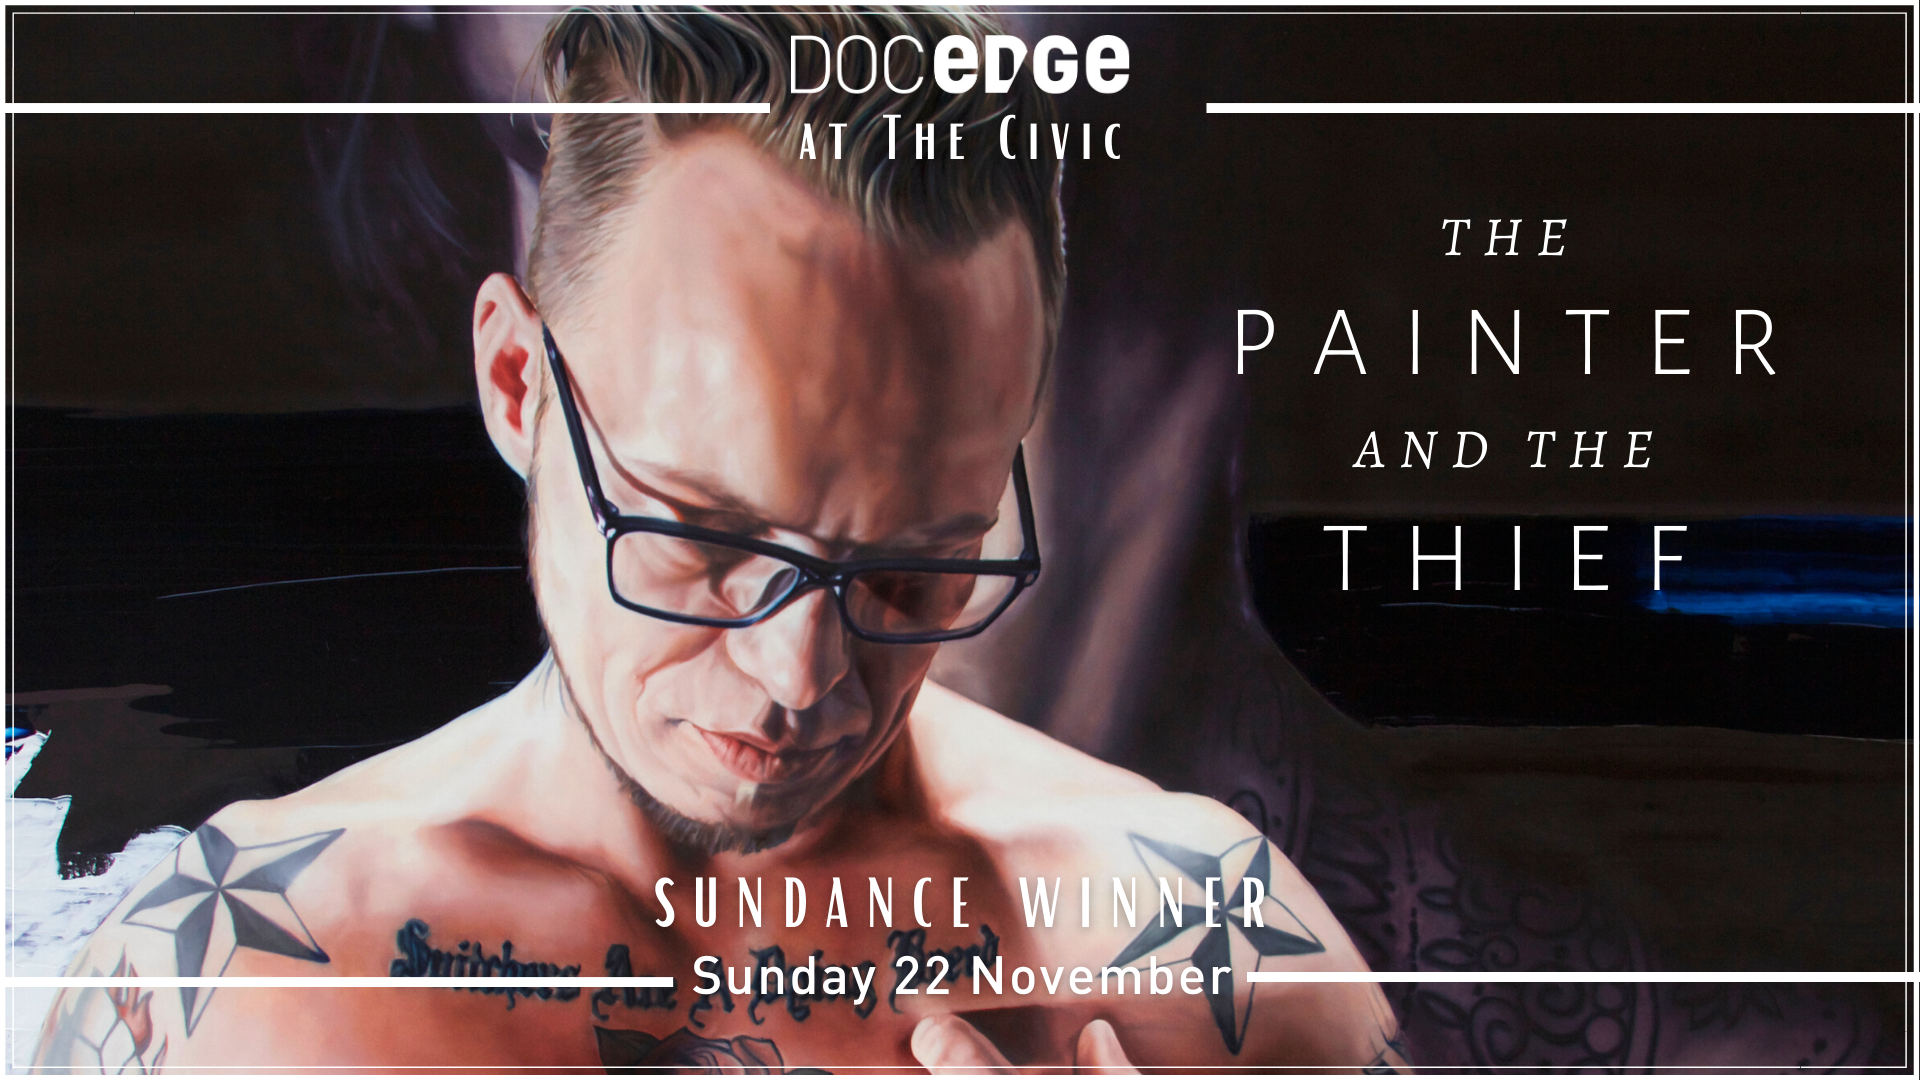 Doc Edge at The Civic, Painter and the Thief, Sundance Winner